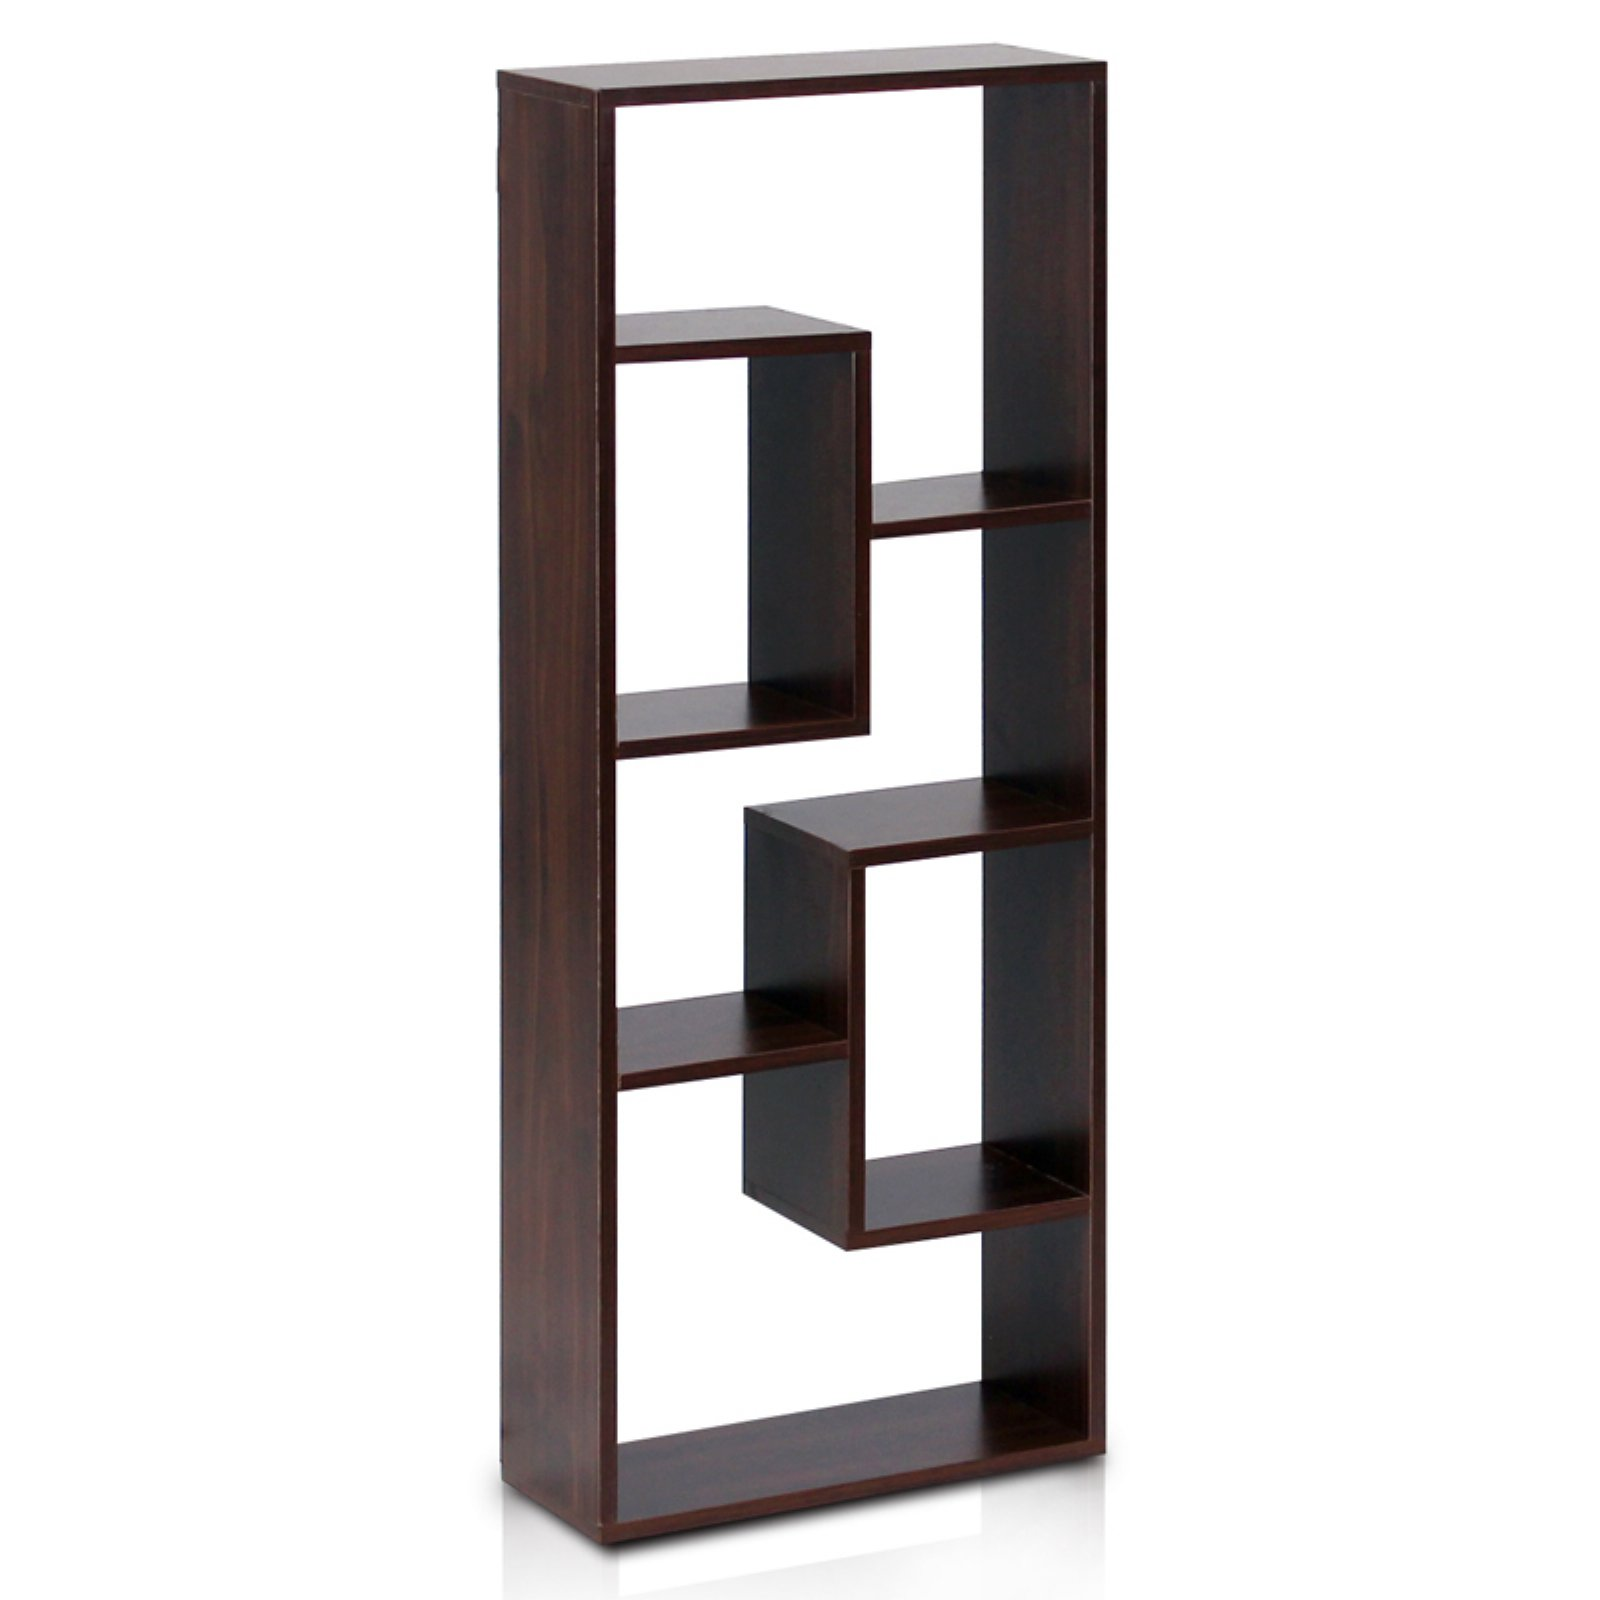 Furinno FNAJ-11033 Boyate Five Wall-Mounted Shelf, Walnut